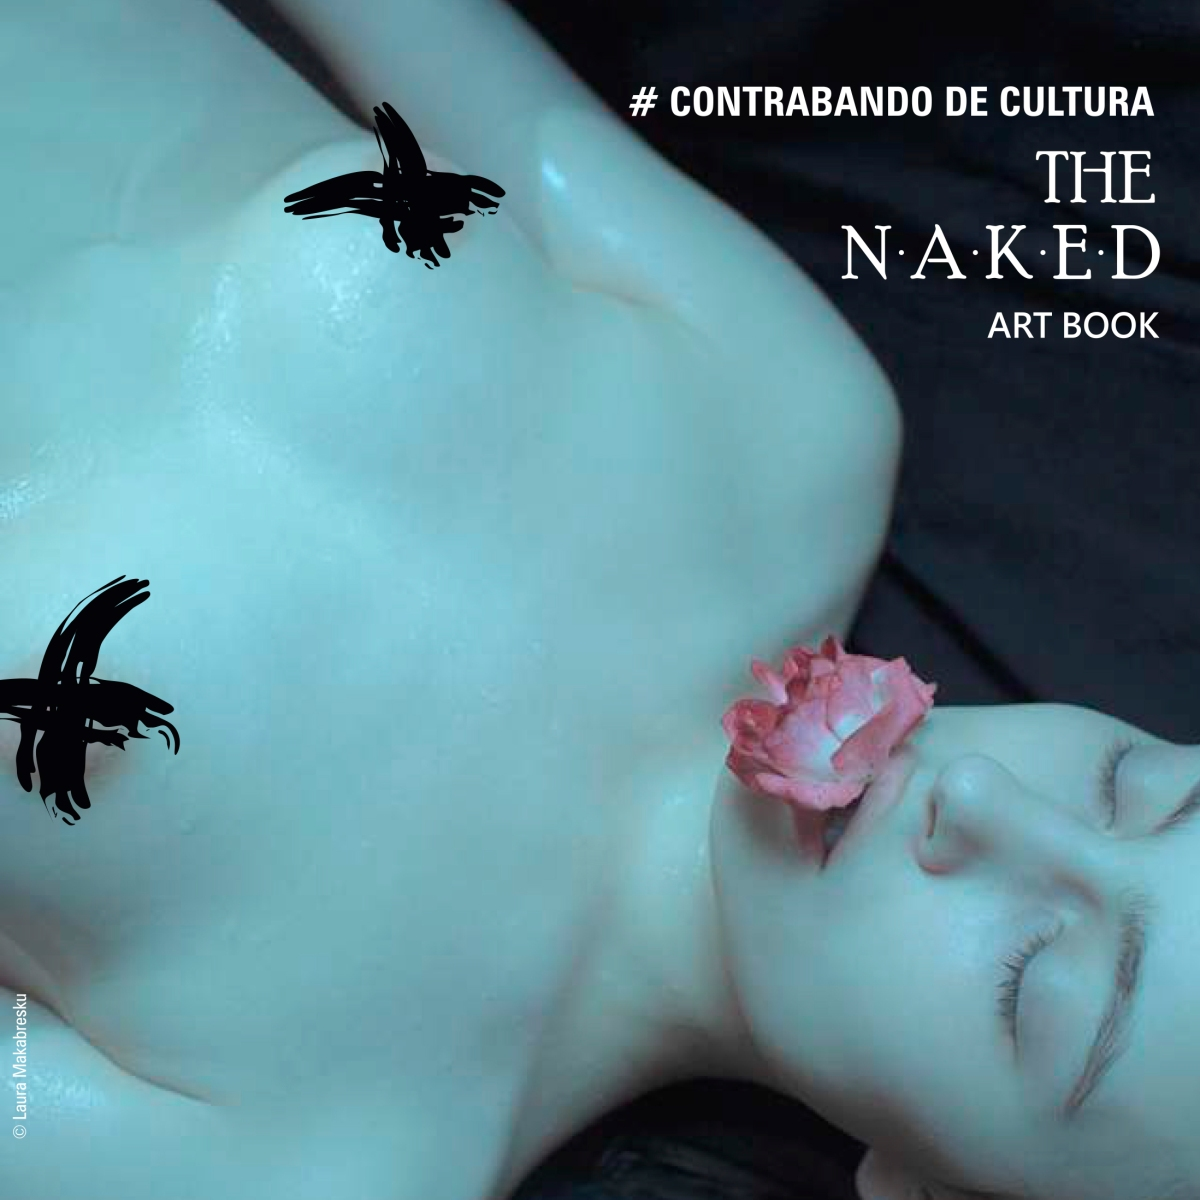 The Naked Art Book | Contrabando de cultura